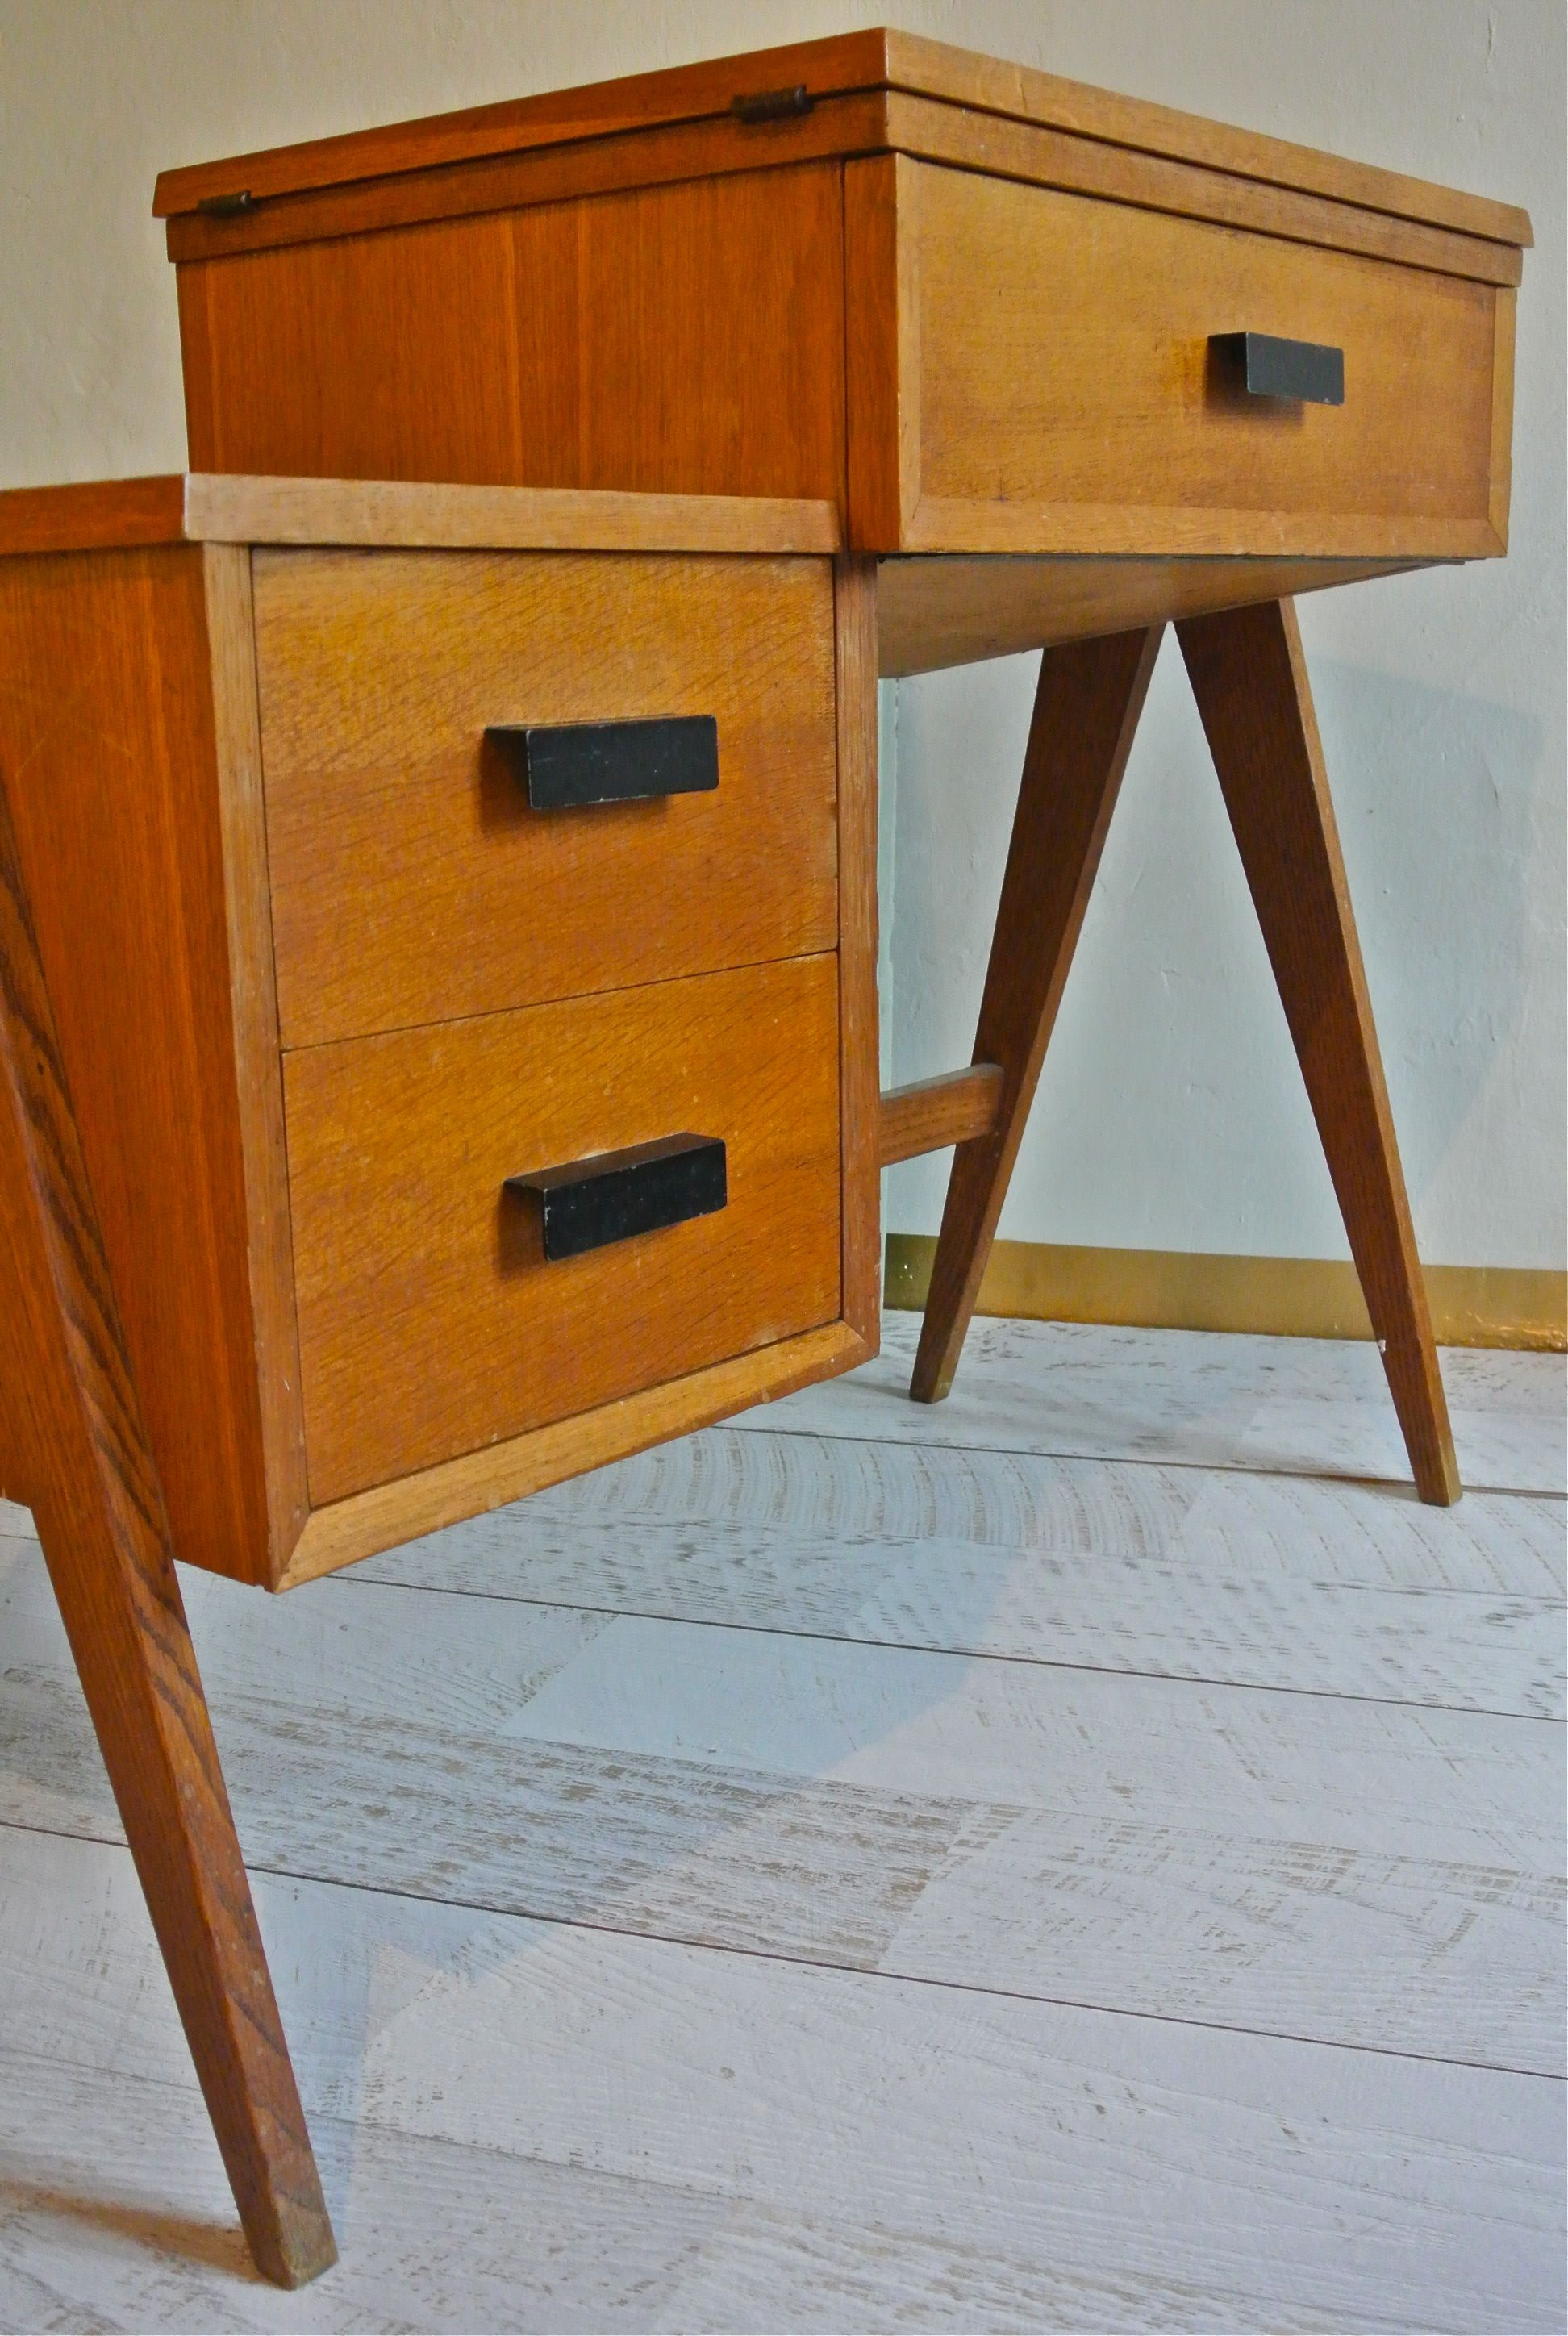 slavia vintage mobilier vintage bureau pieds compas des ann es 60 d cal. Black Bedroom Furniture Sets. Home Design Ideas